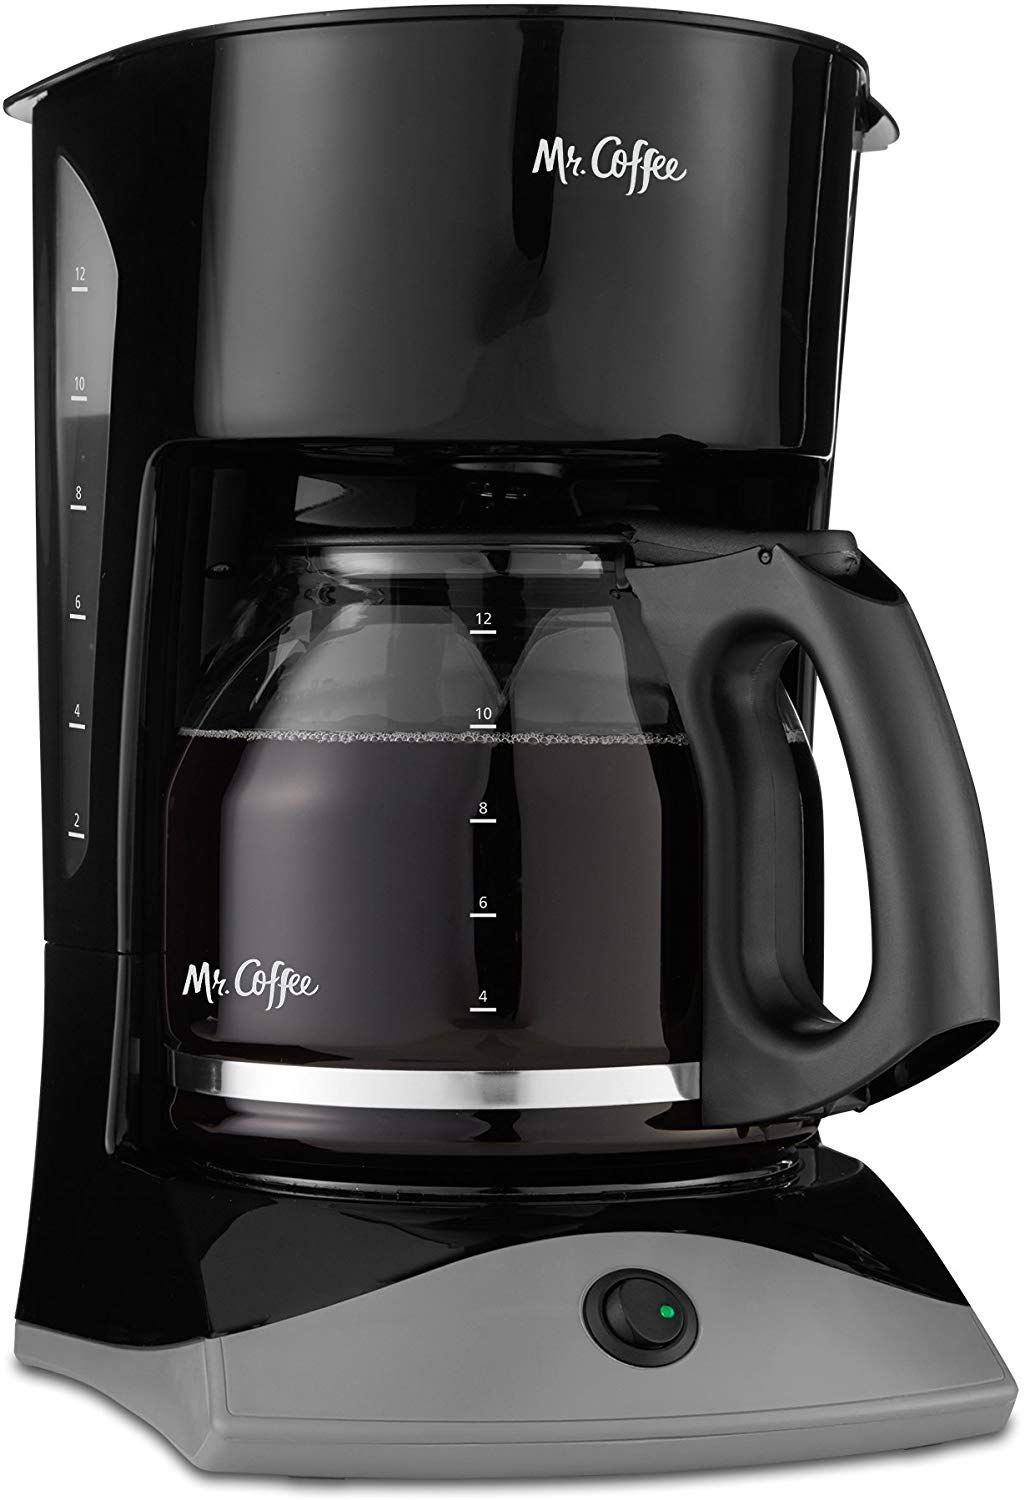 mrcoffee coffeemakers coffeemaker kitchen coffee